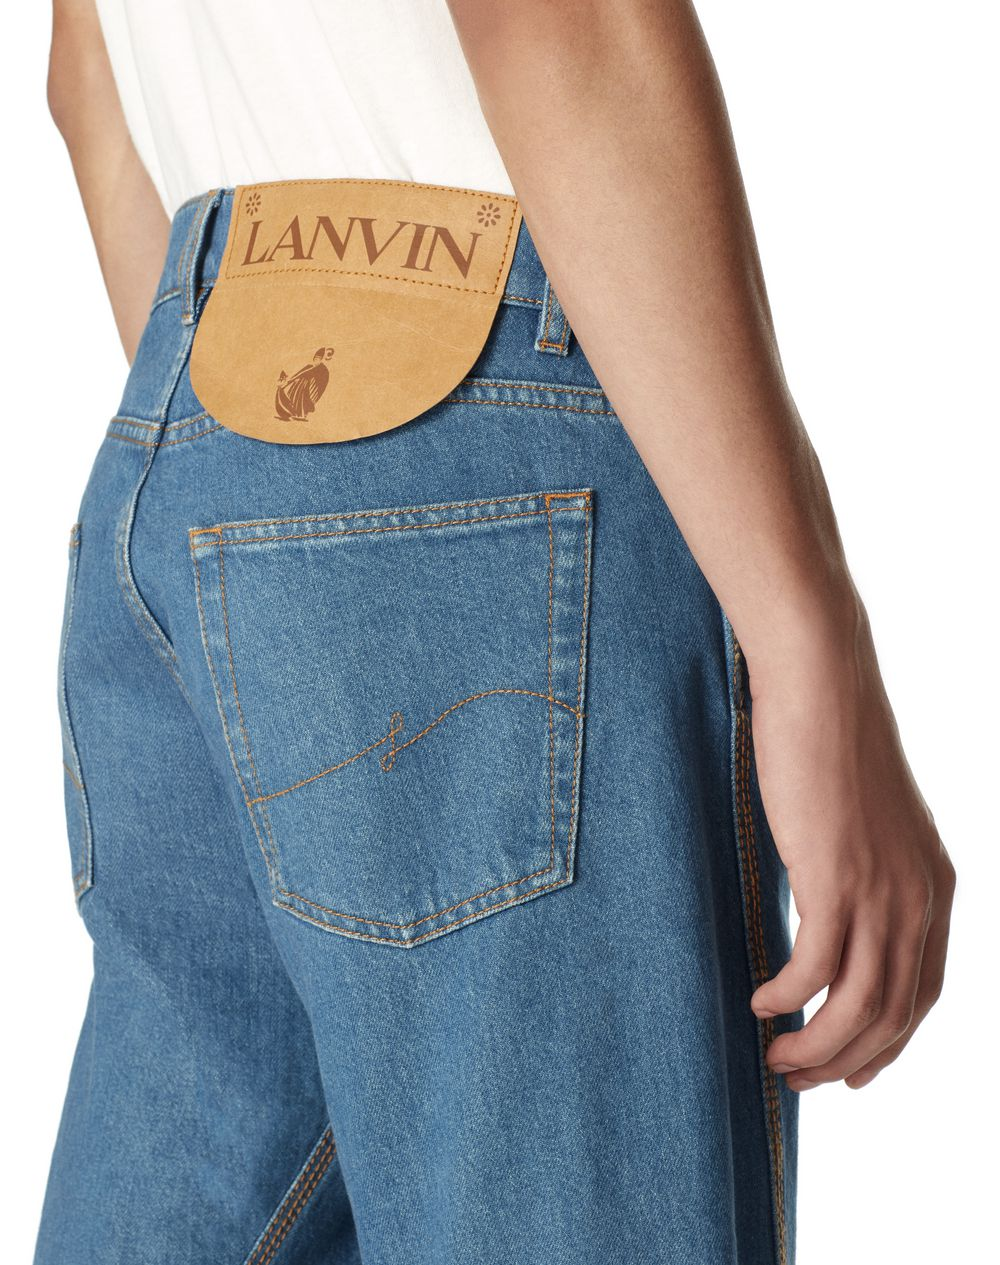 DENIM TROUSERS - Lanvin